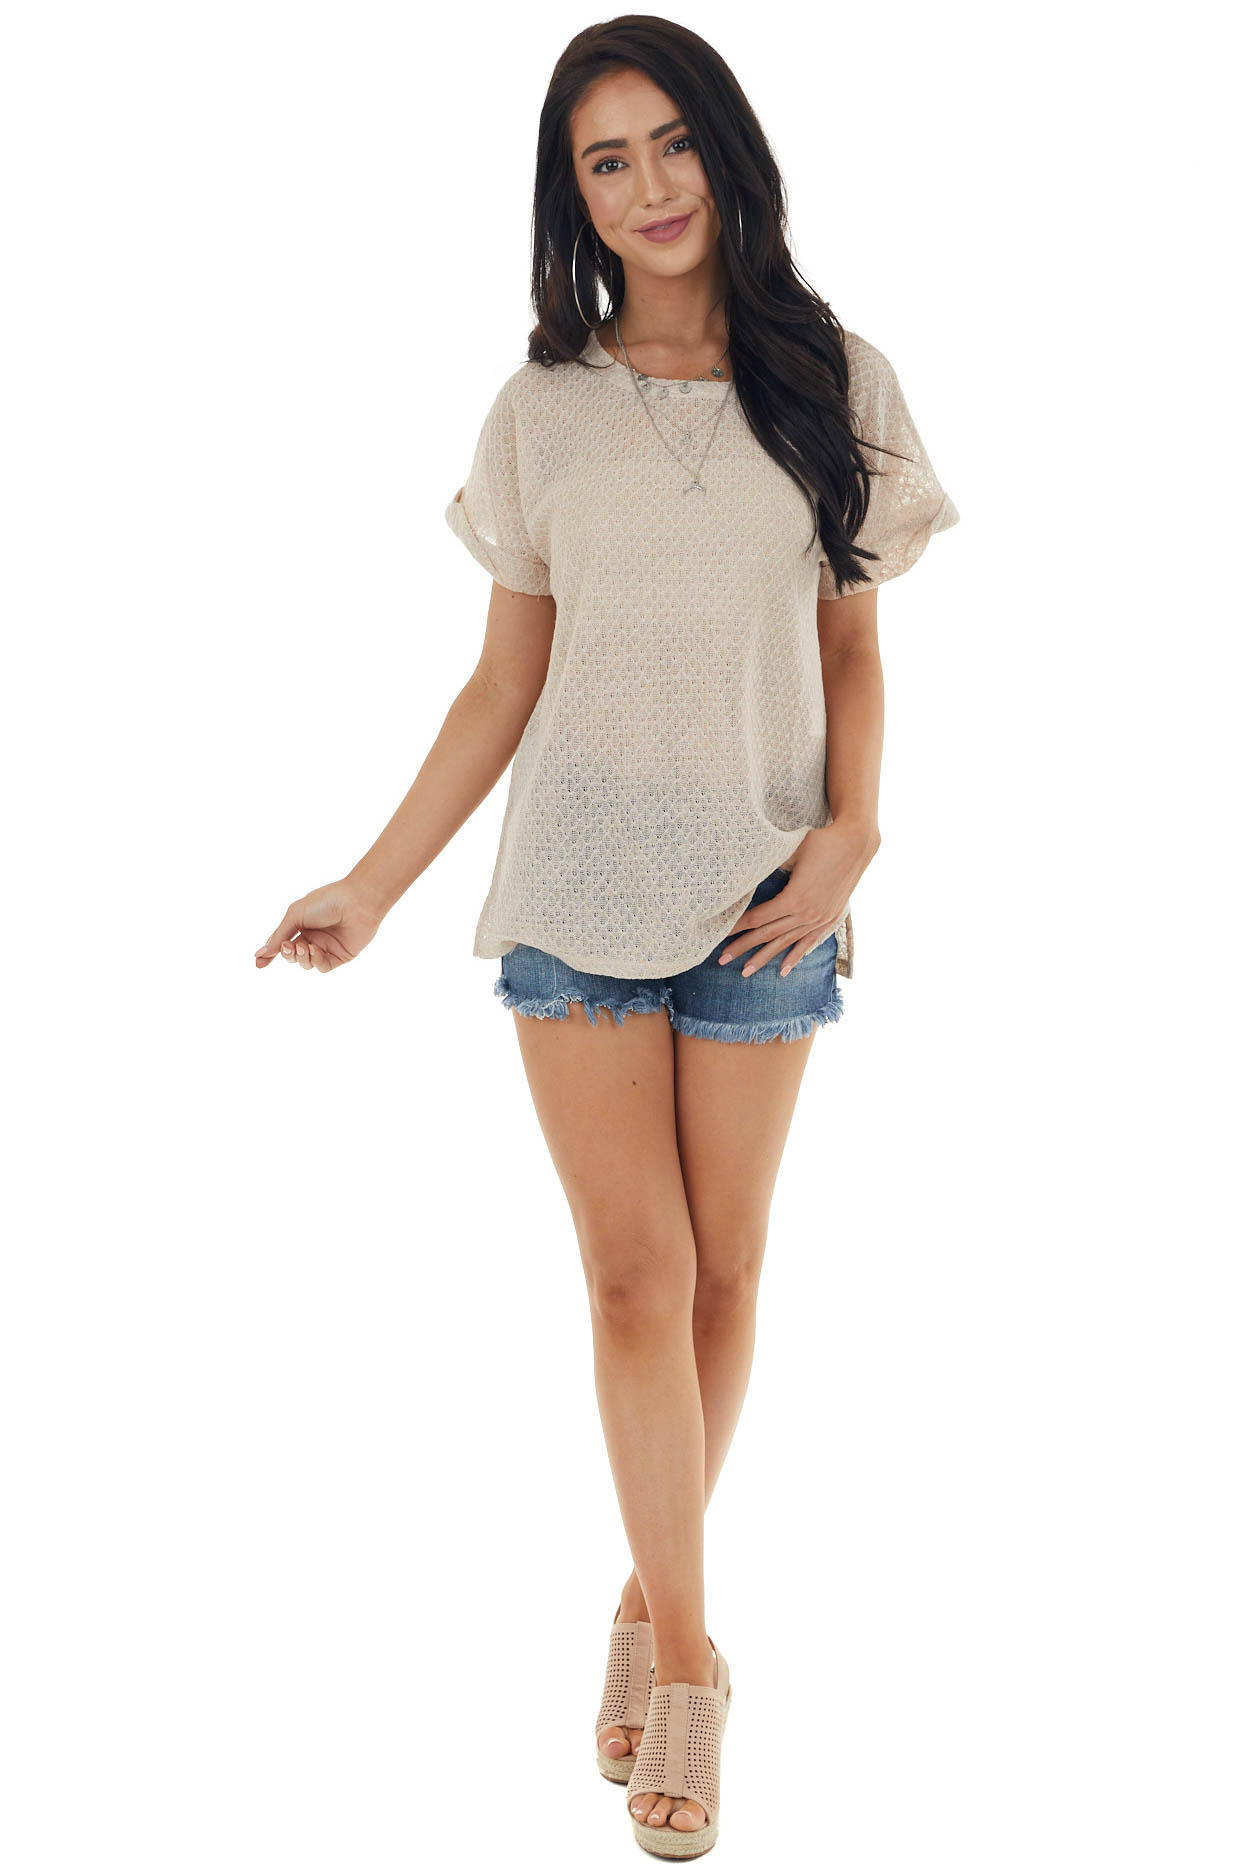 Sand Stretchy Textured Loose Knit Top with Short Sleeves